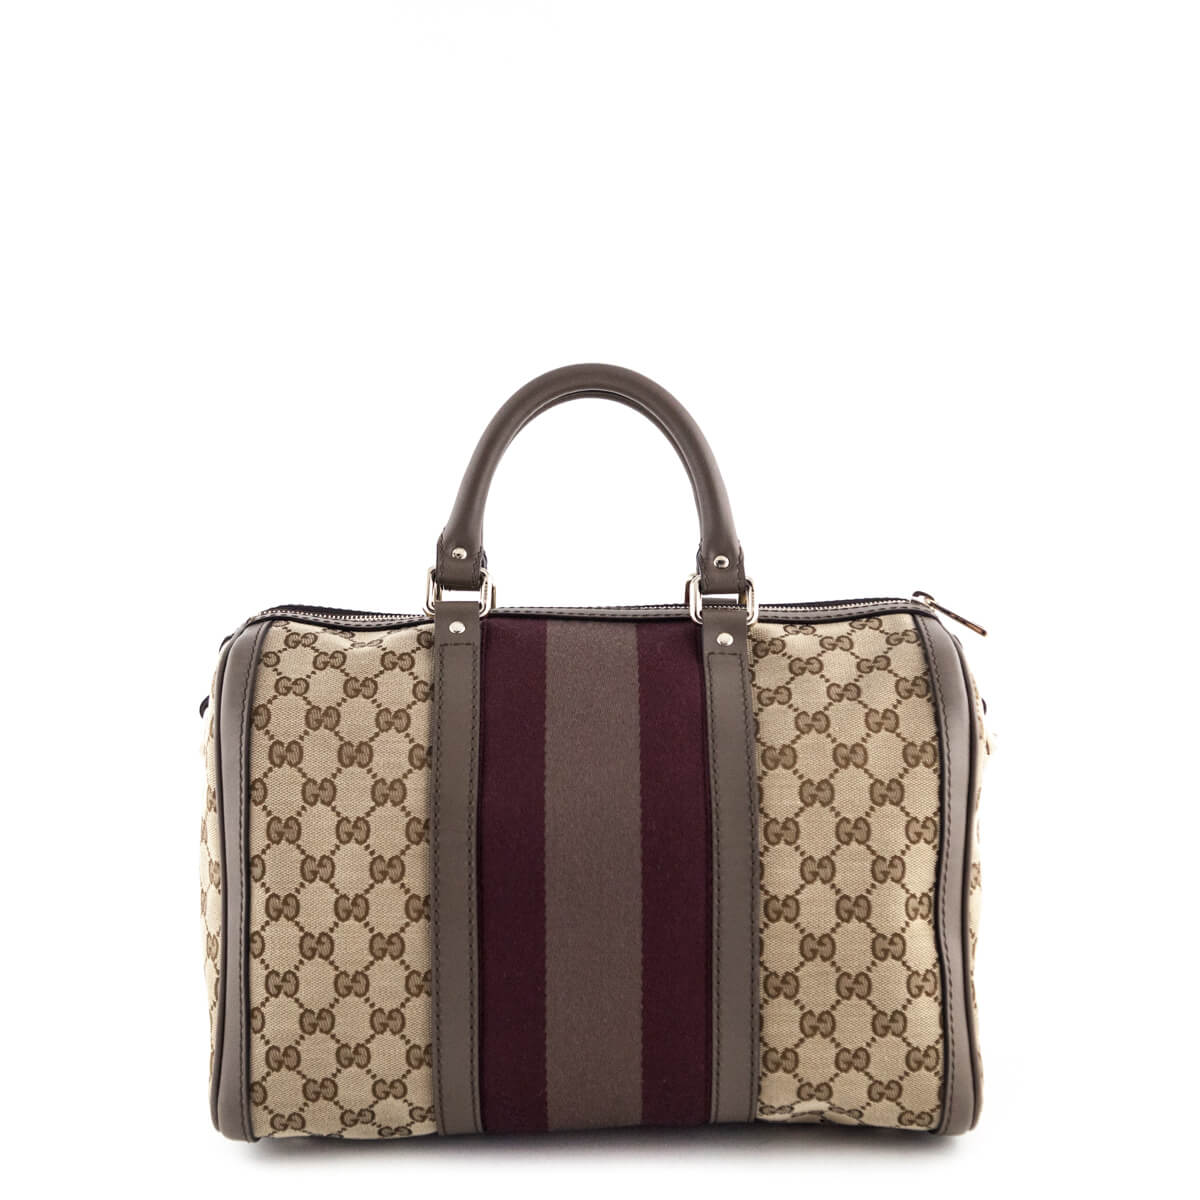 8d953dbc4 ... Gucci Taupe Stripe Monogram Medium Joy Boston Bag - LOVE that BAG -  Preowned Authentic Designer ...